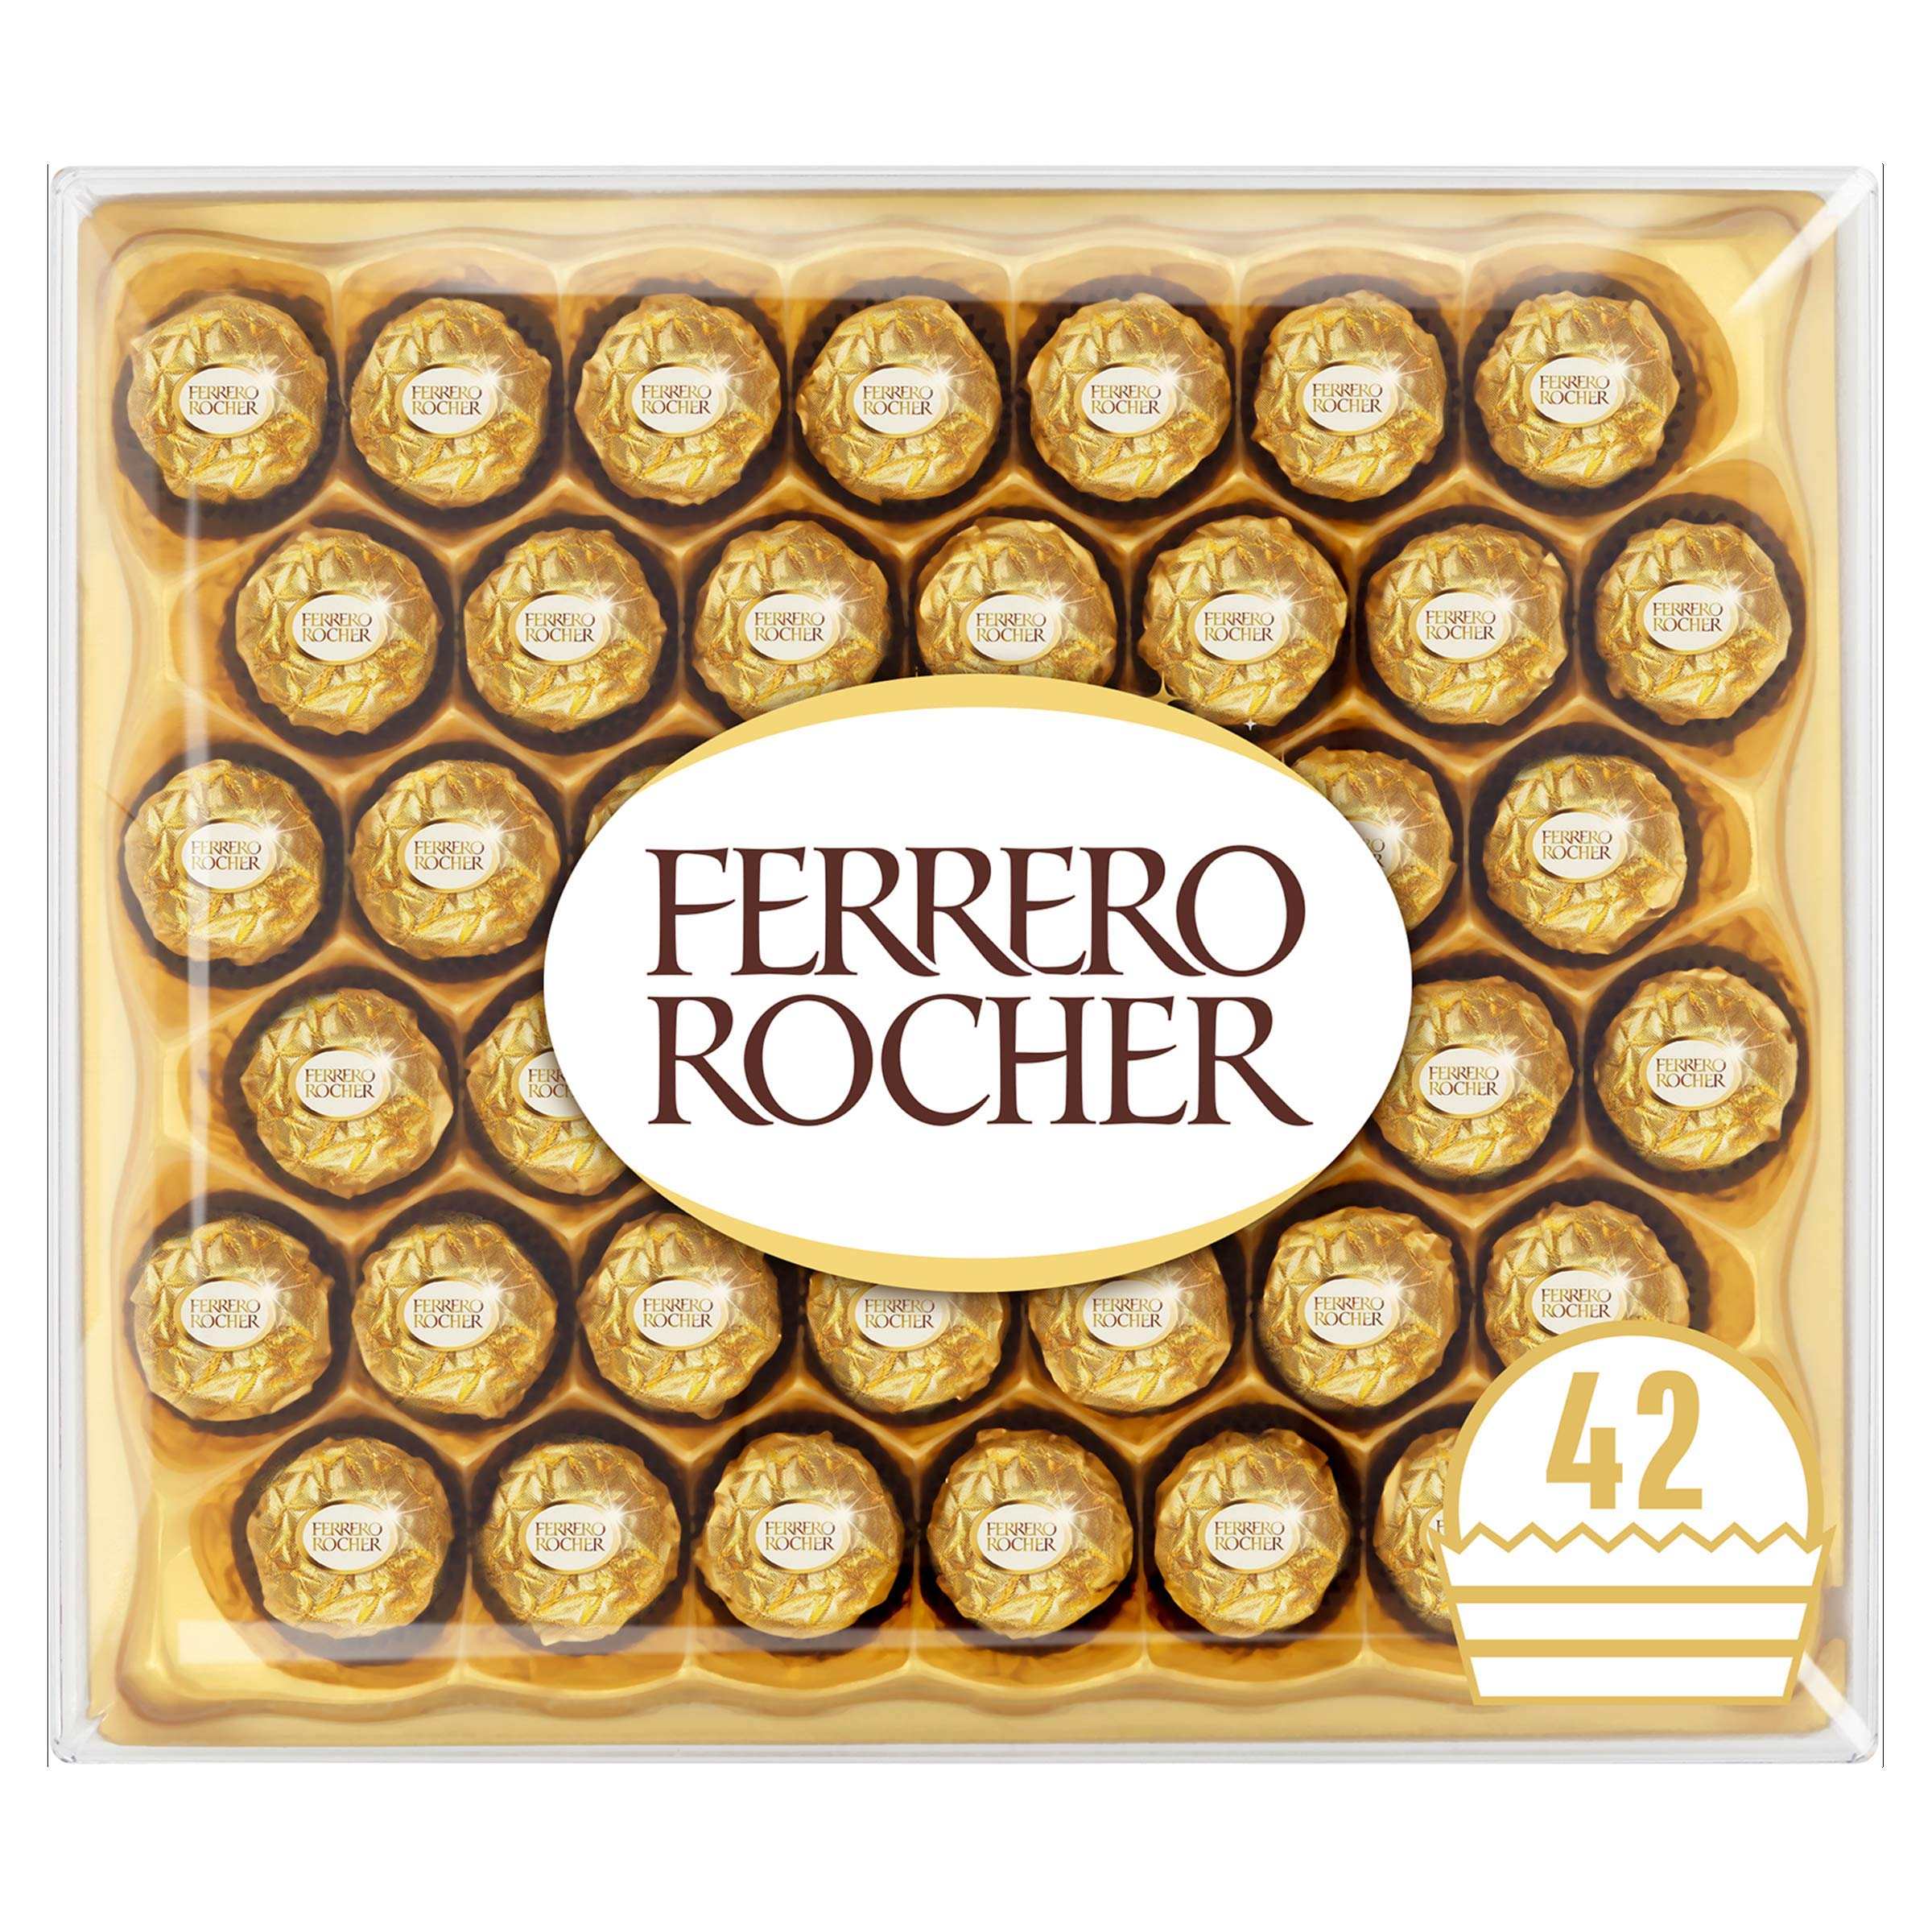 Ferrero Rocher Chocolate Easter Gift Set, Hazelnut and Milk Chocolate Pralines, Box of 42 Pieces